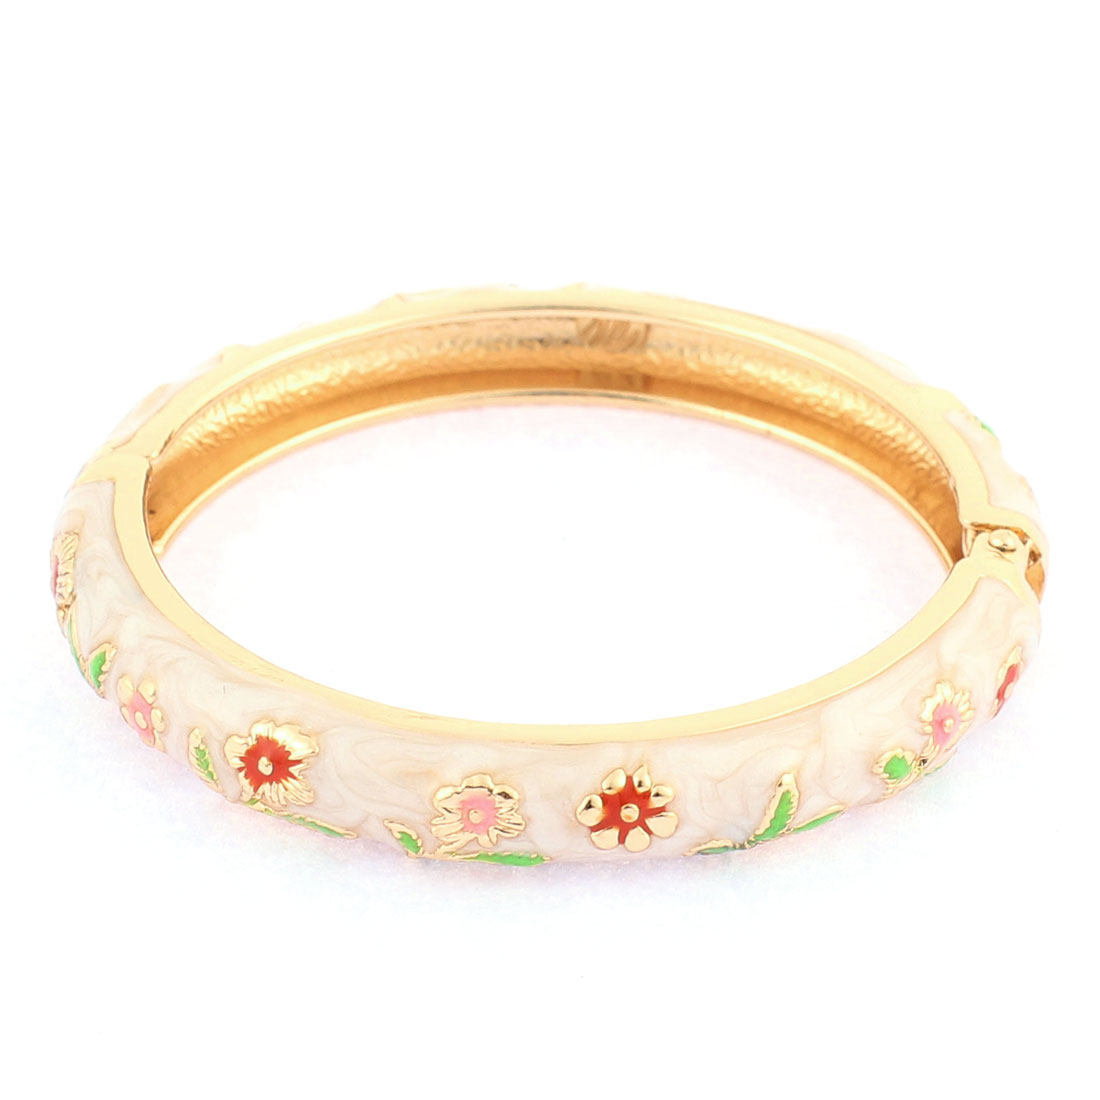 Girls Wear Mini Flower Ornament Spring Closure Round Cuff Bangle Beige